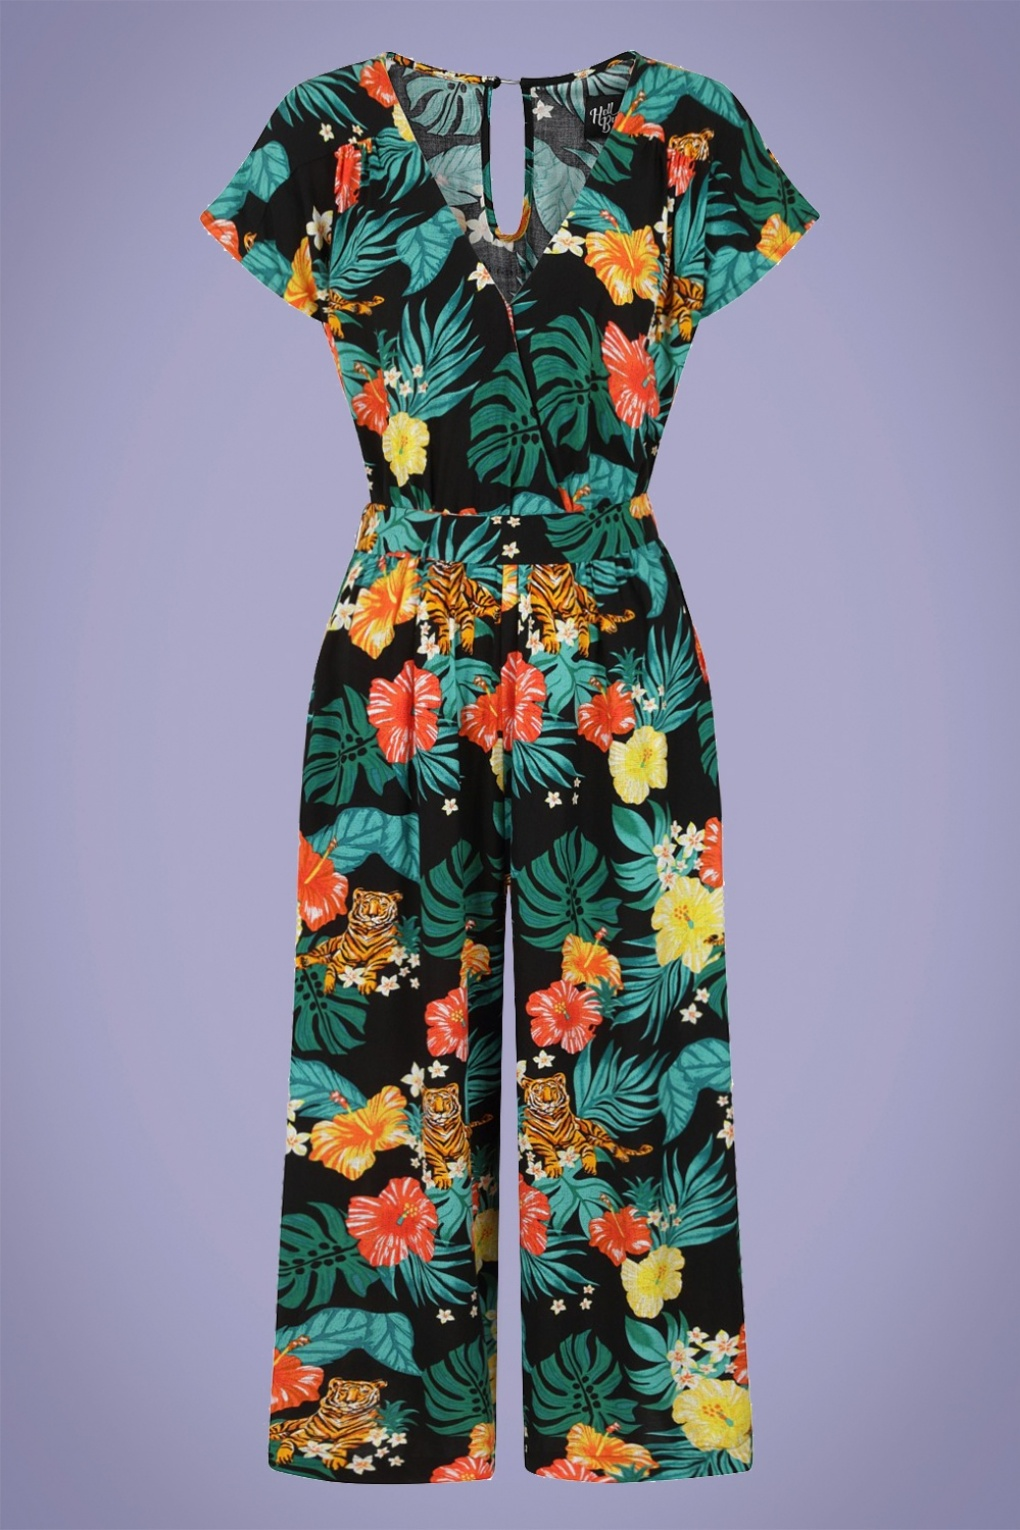 Vintage Rompers, Playsuits | Retro, Pin Up, Rockabilly Playsuits 70s Bali Jumpsuit in Black £54.59 AT vintagedancer.com